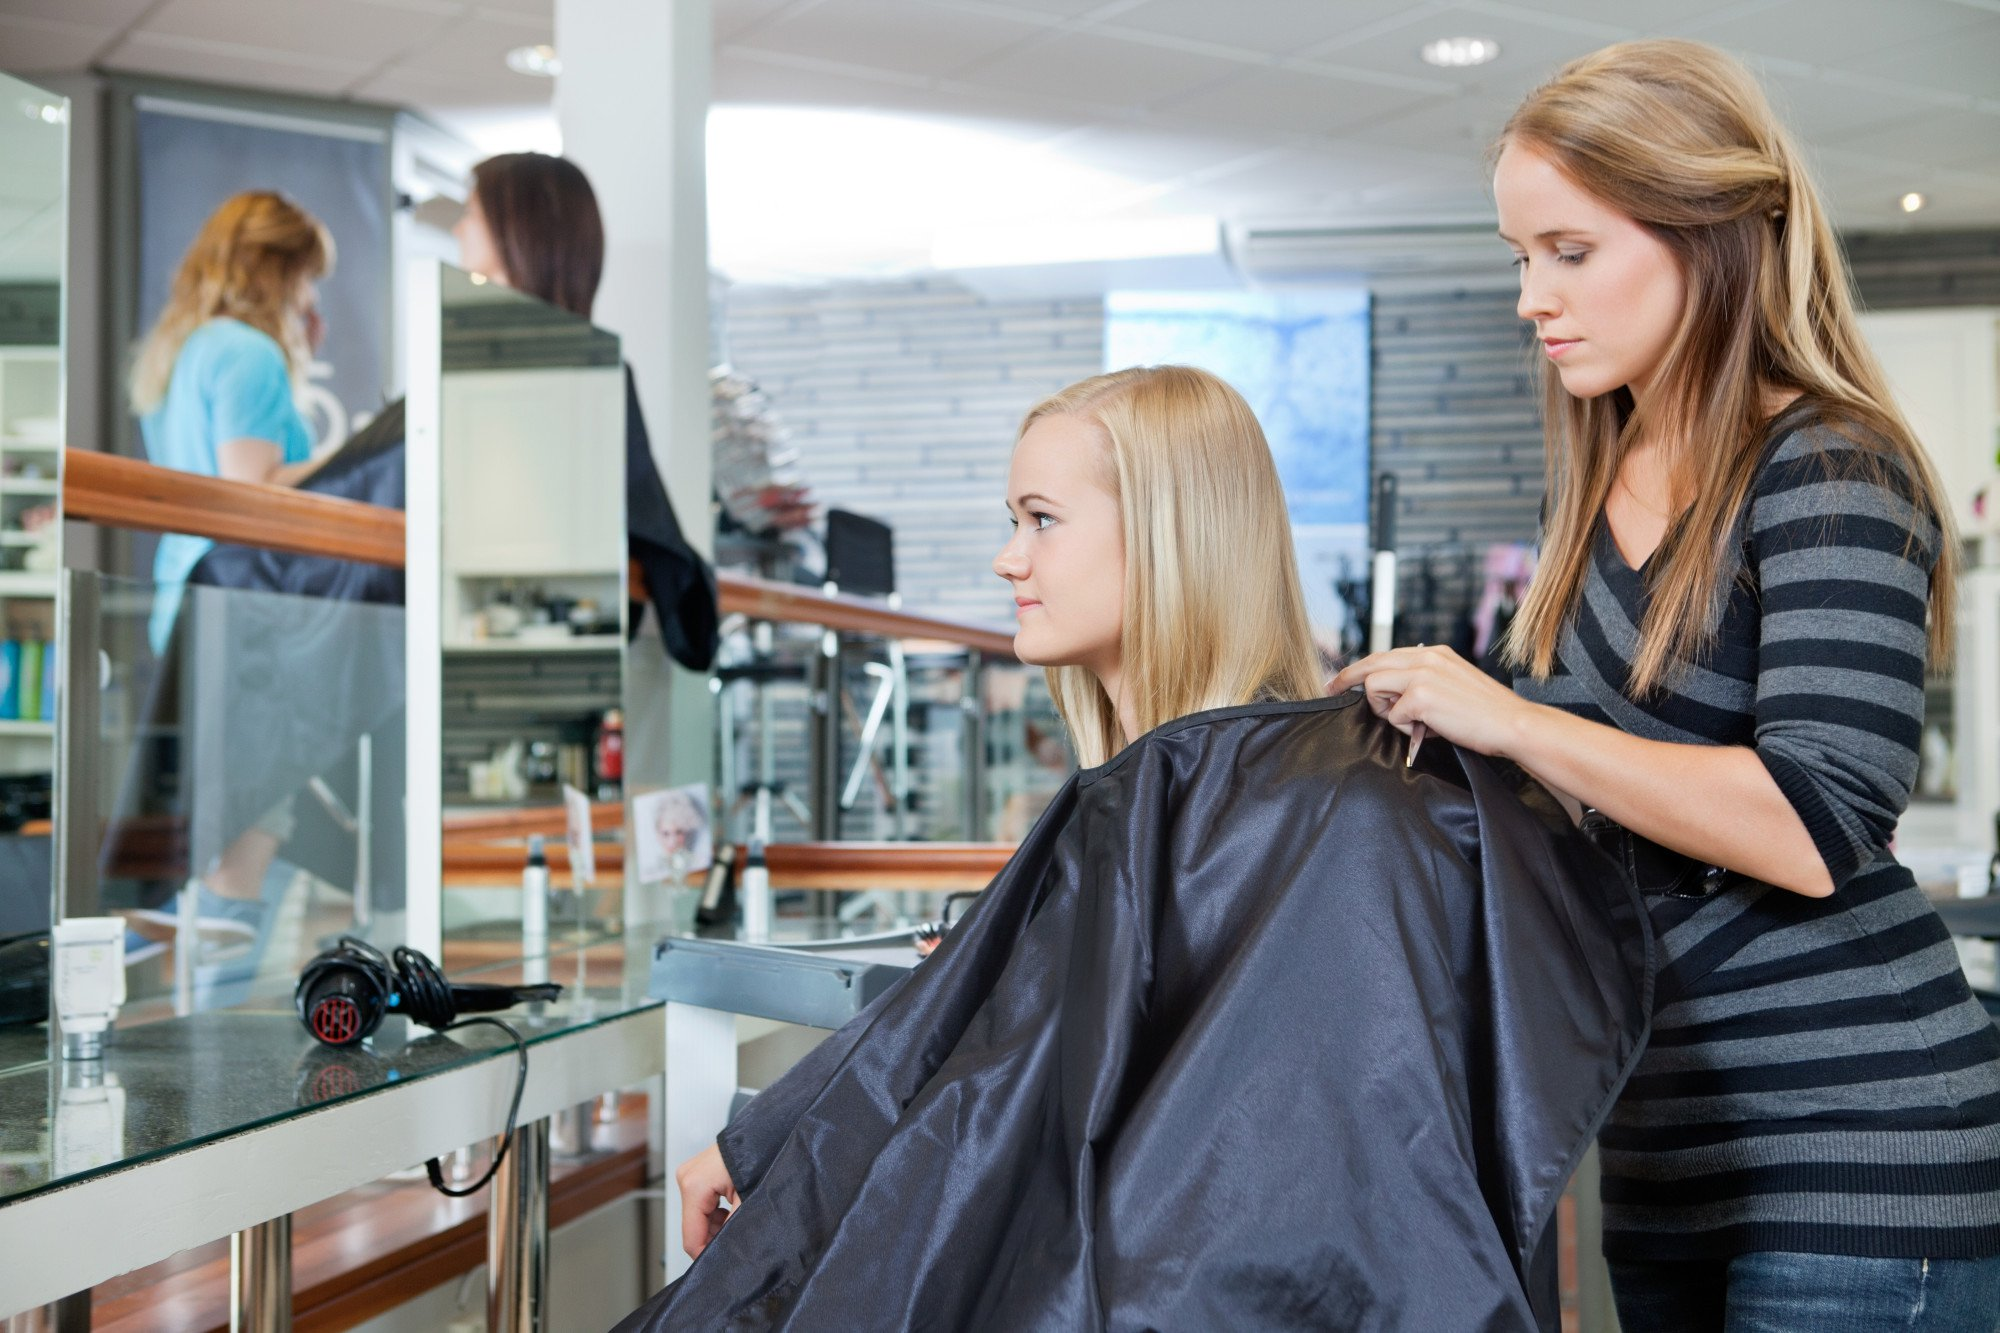 Salons Need The Appropriate Equipment To Meet Customer Needs